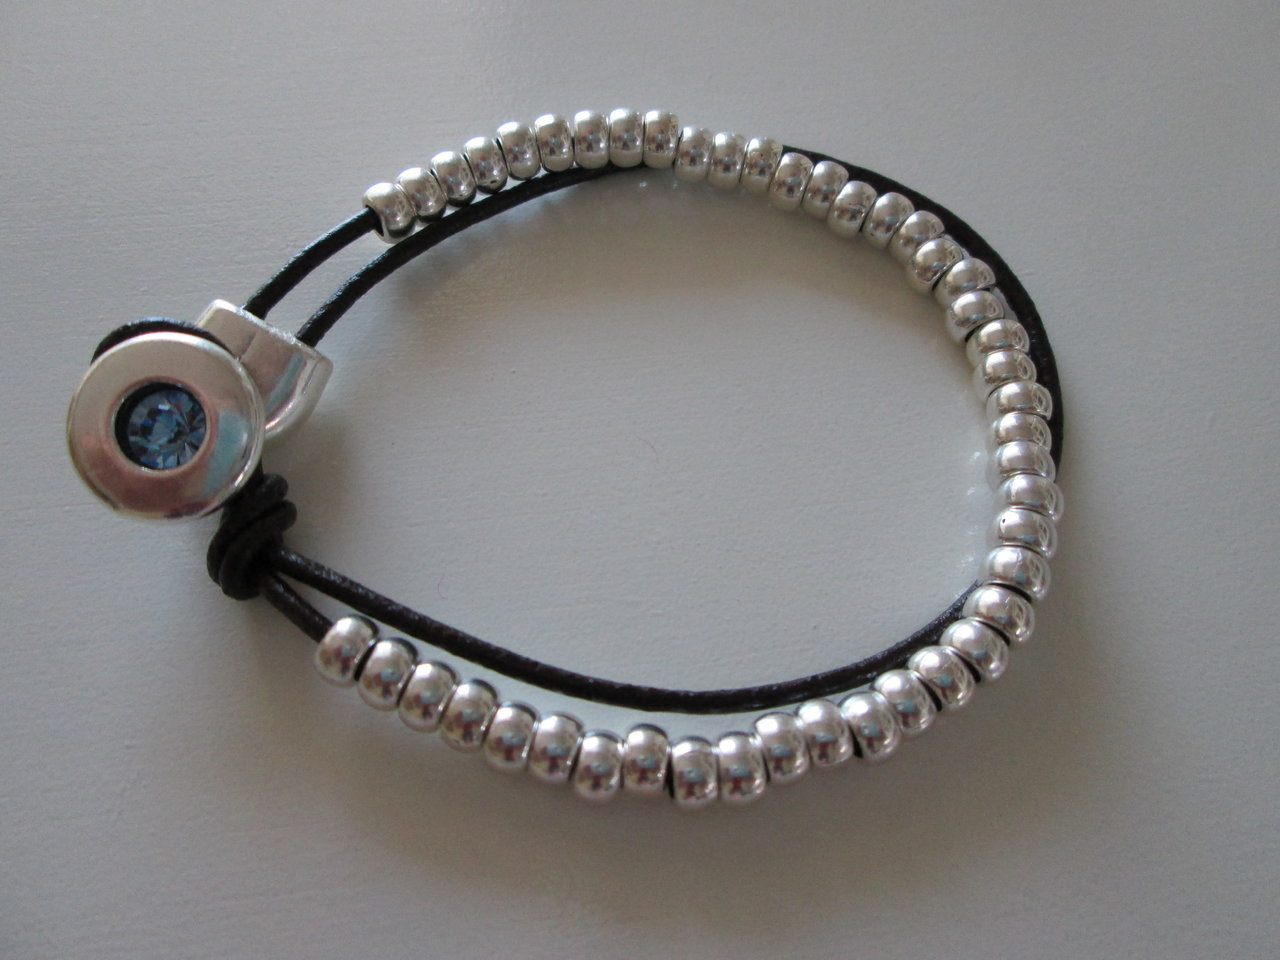 BRACELET IN ZAMAK WITH BEADS AND LEATHER